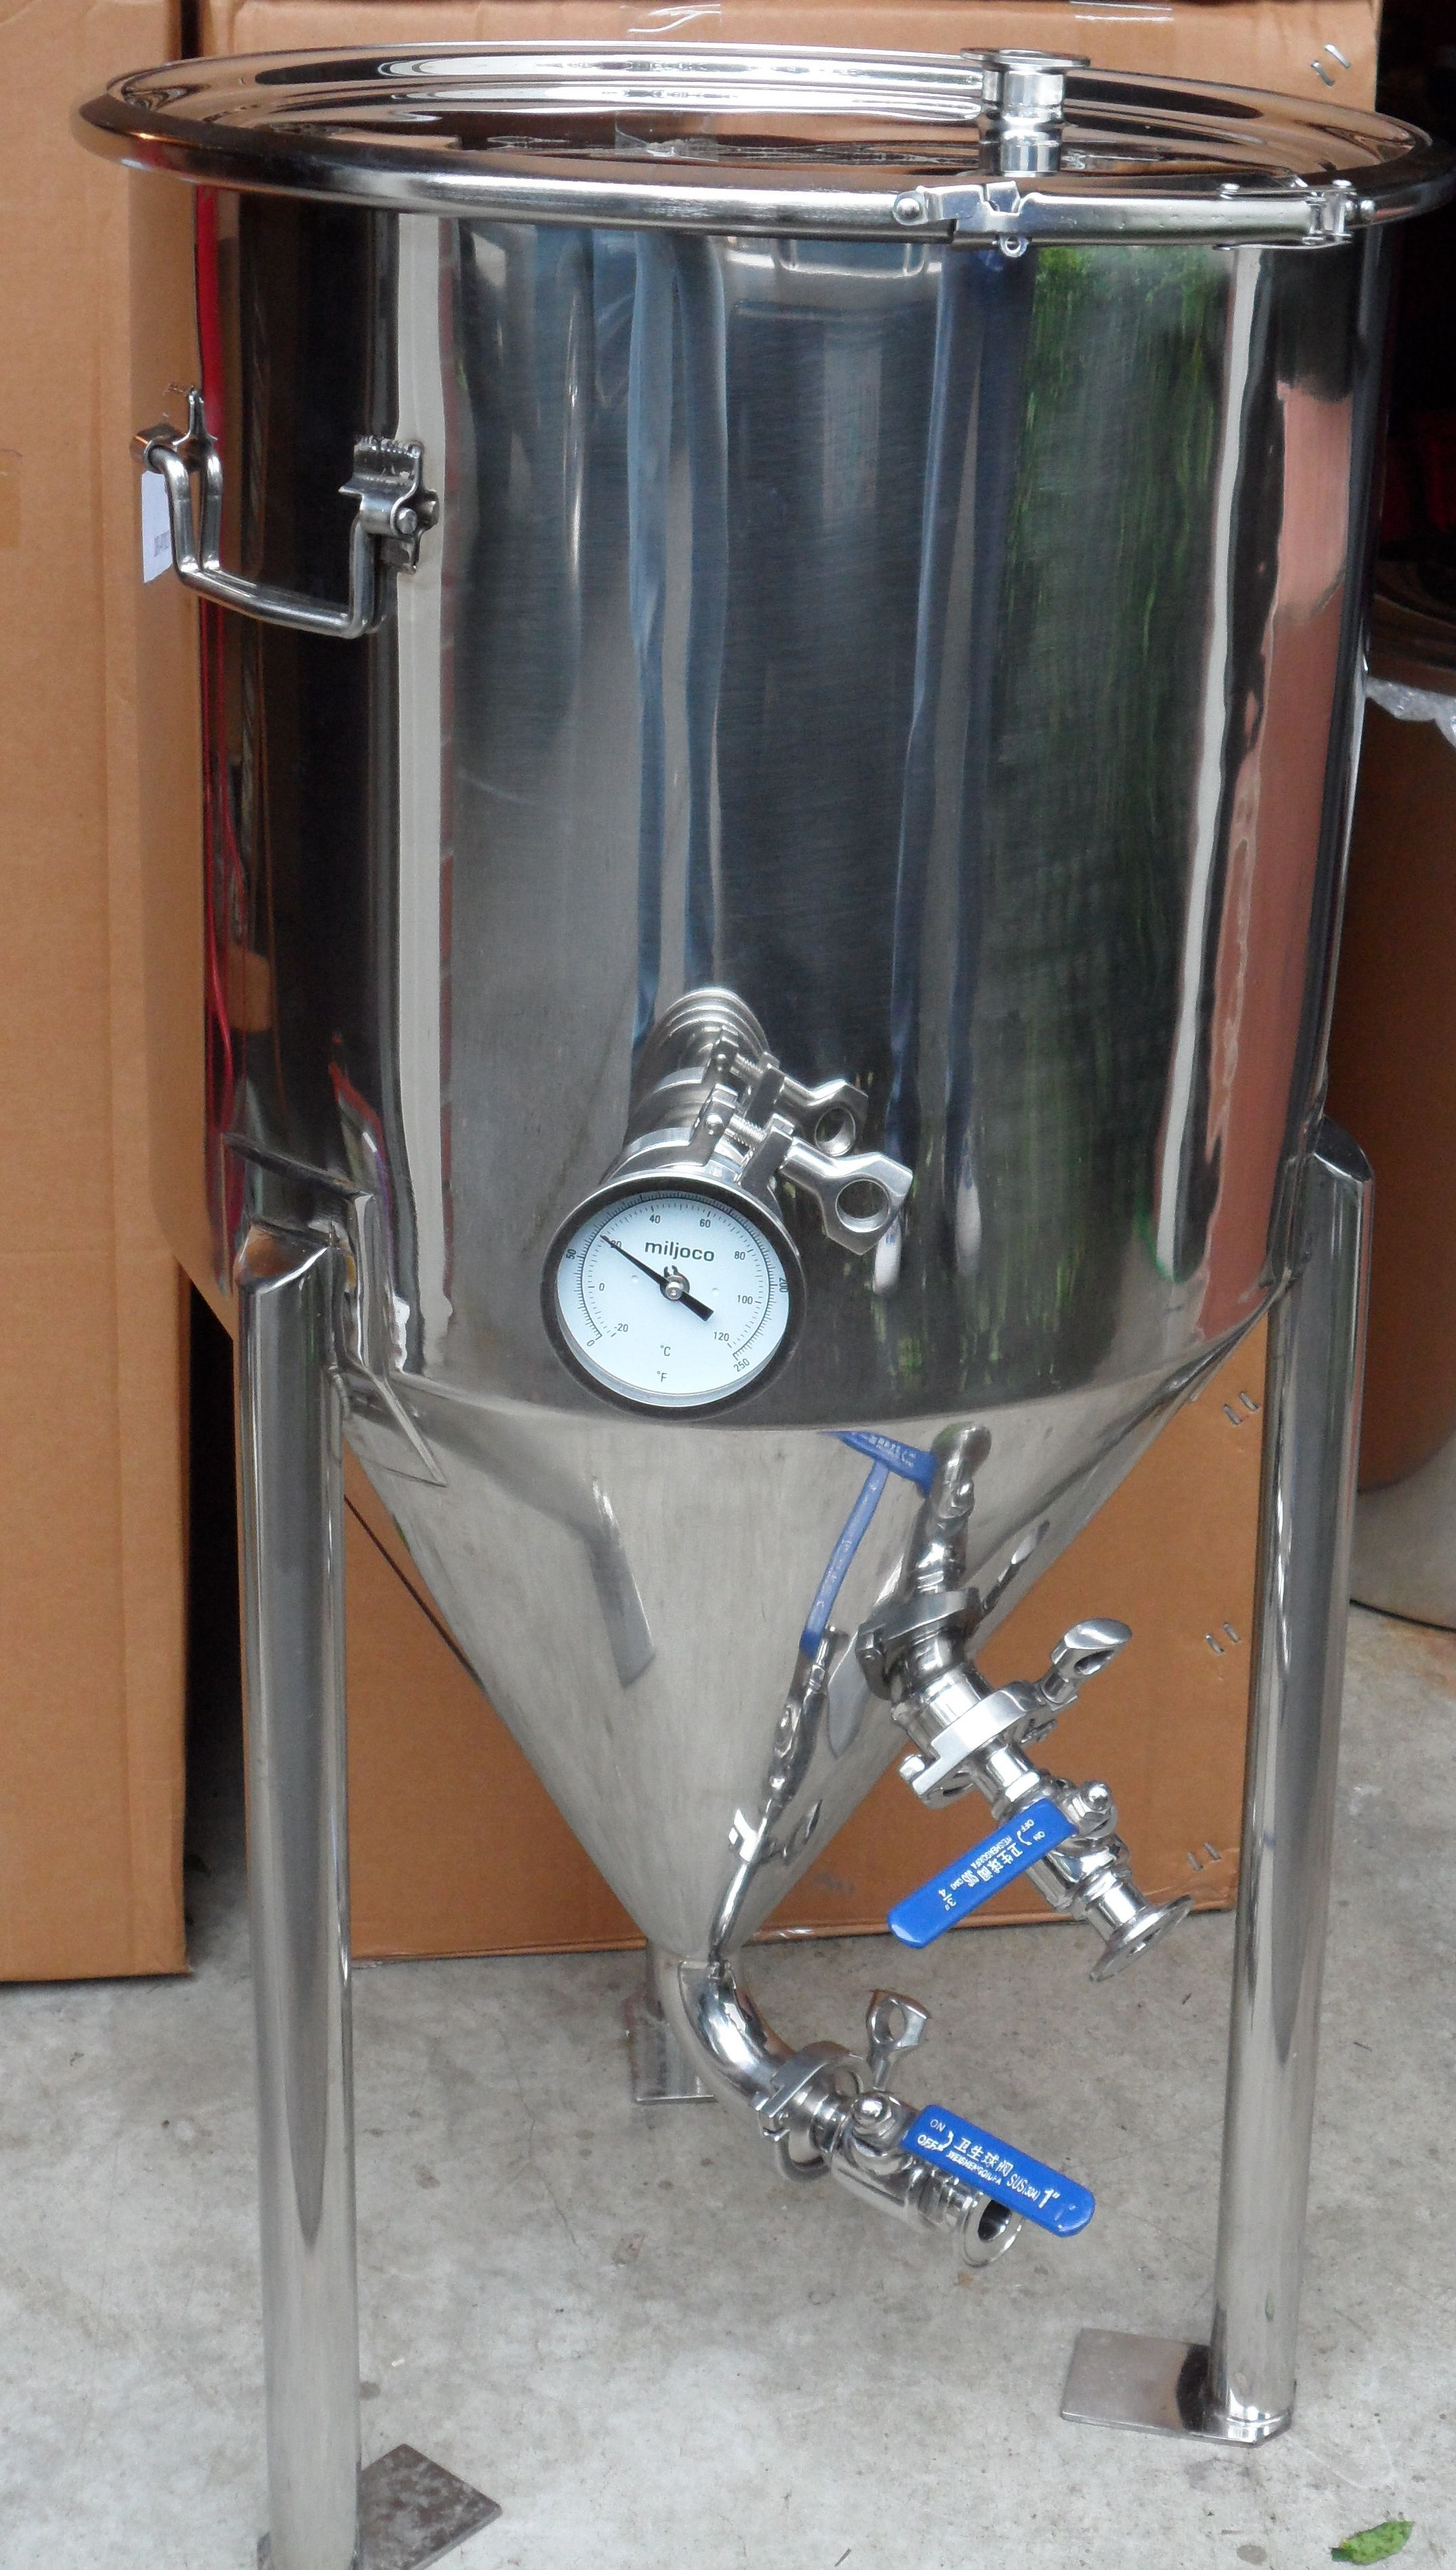 Conical Fermenter For Home Brewing Next Purchase On The Brew Supplies List